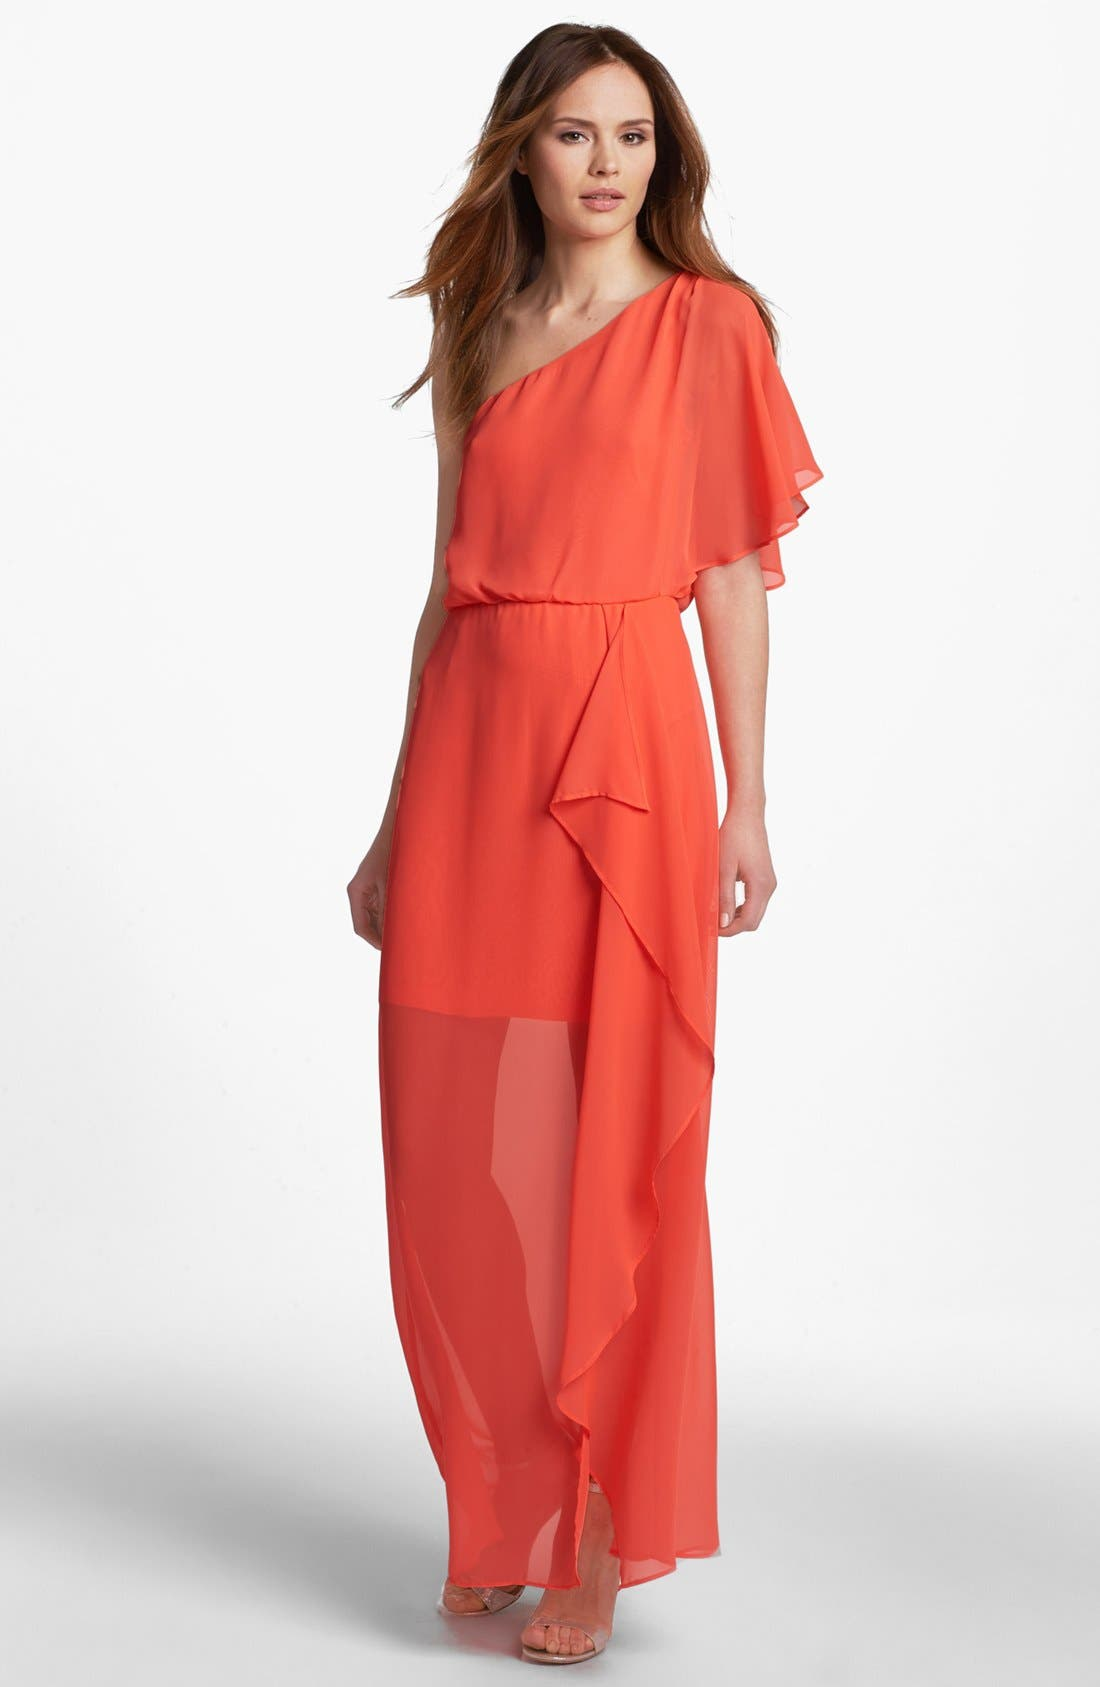 Main Image - Hailey by Adrianna Papell One Shoulder Chiffon Dress